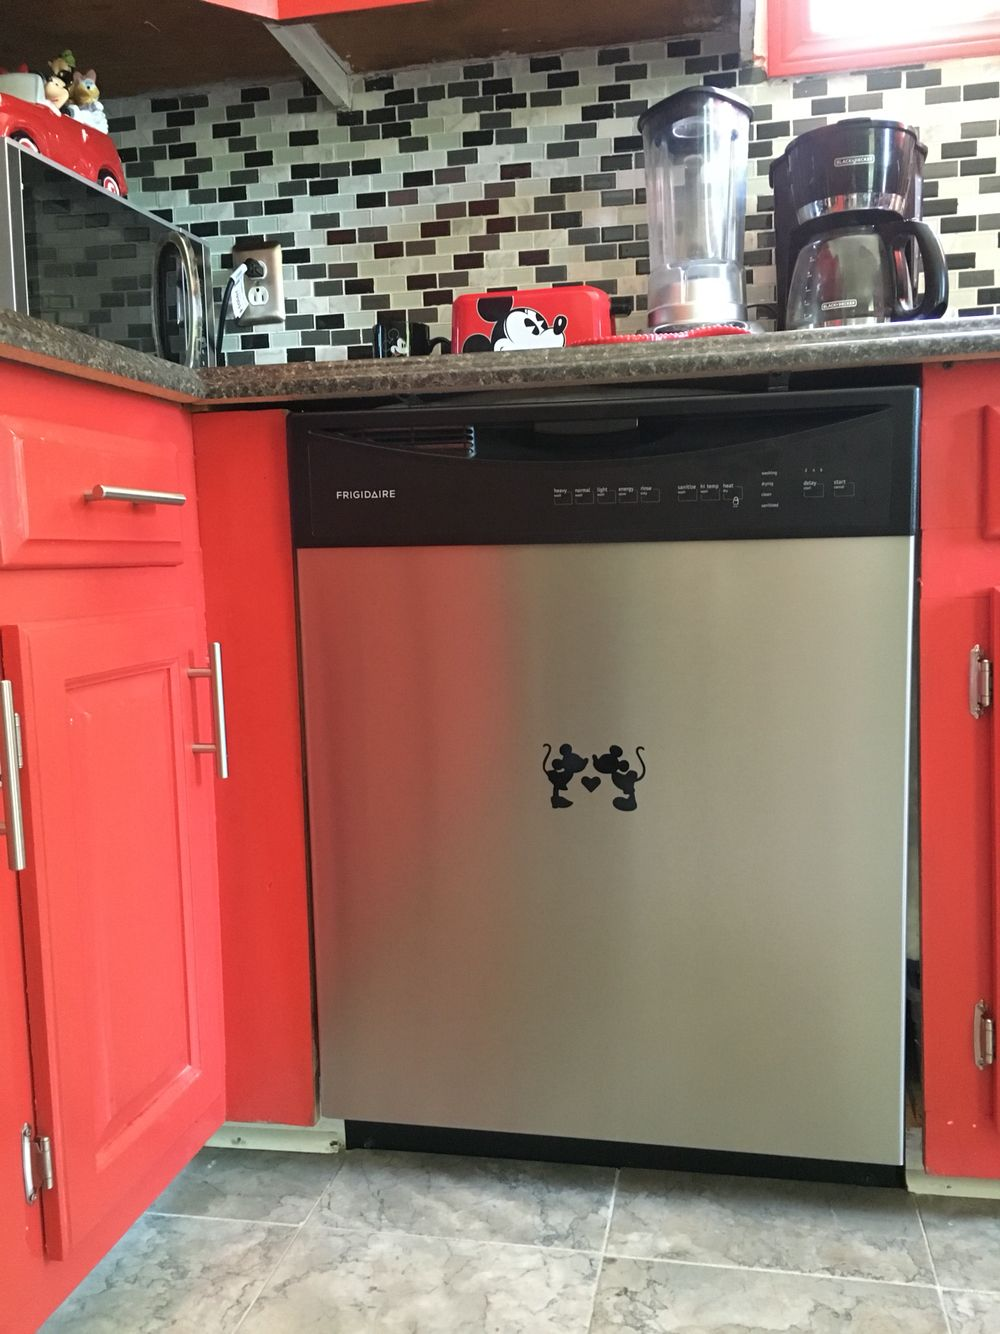 Mickey mouse dishwasher decals